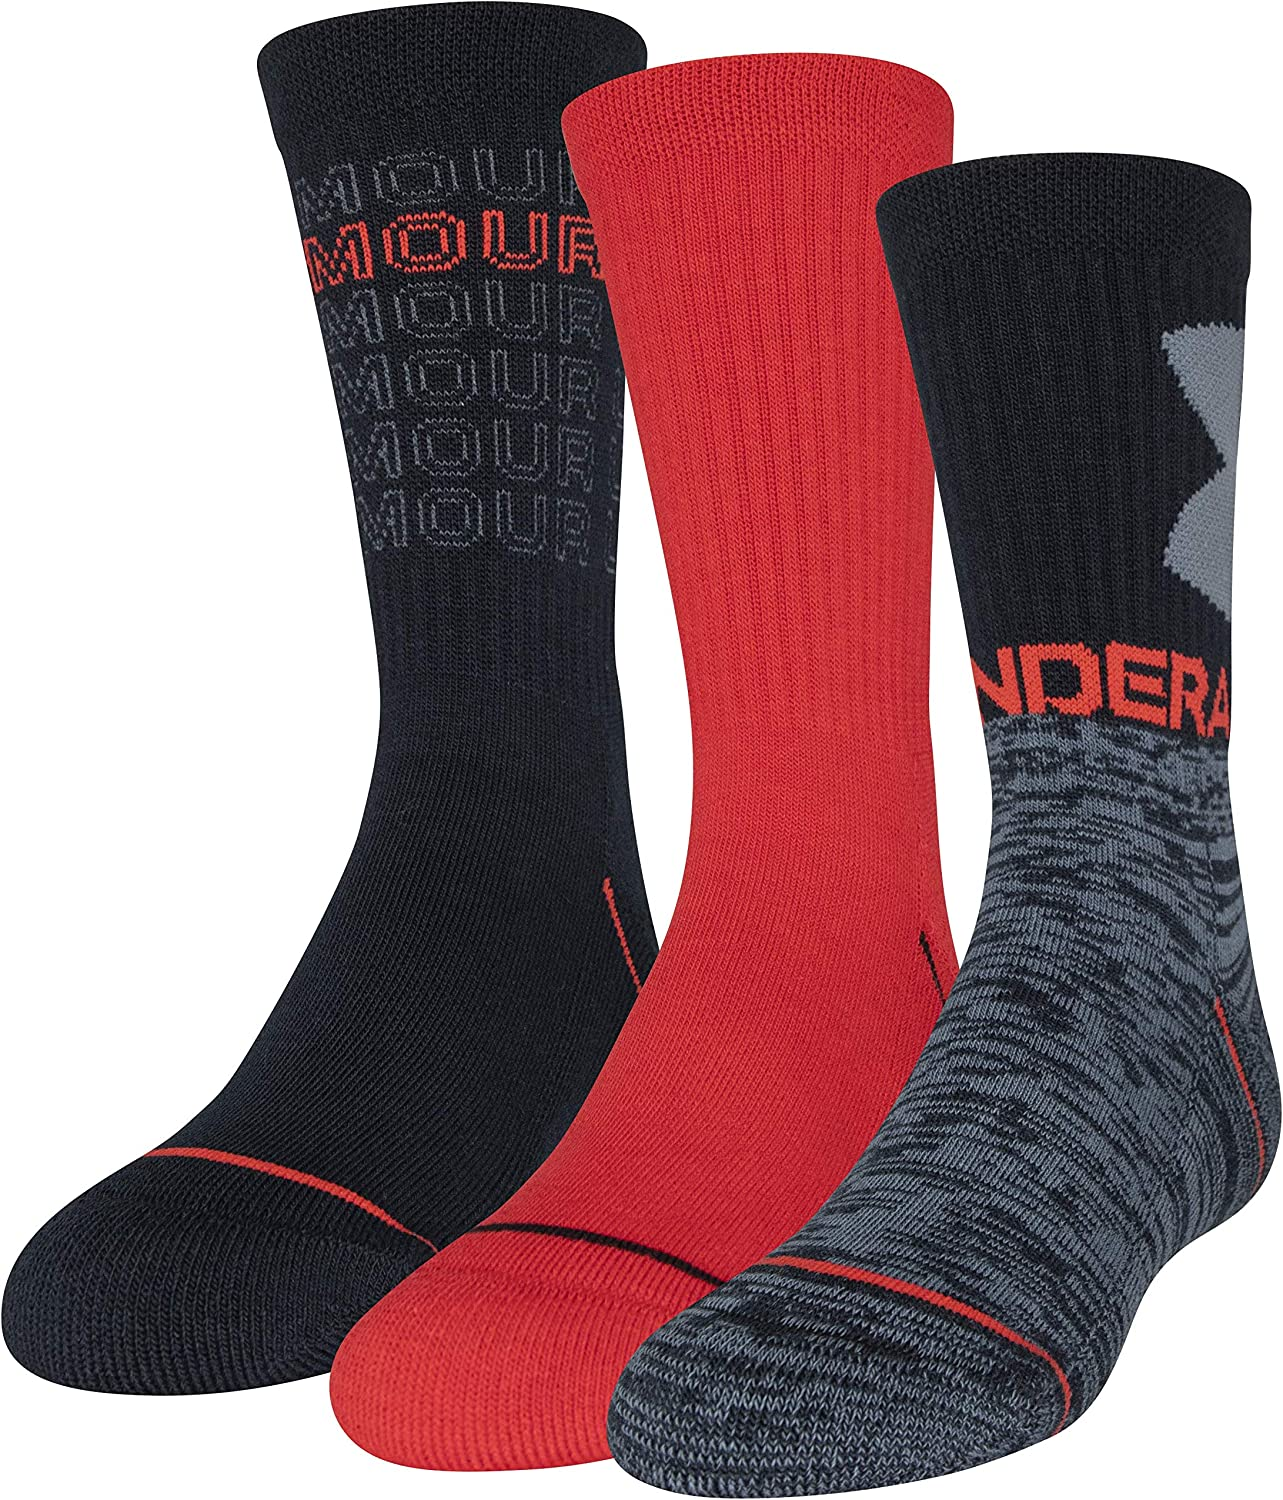 Under Armour Youth Training Cotton Crew Socks, 3-Pairs